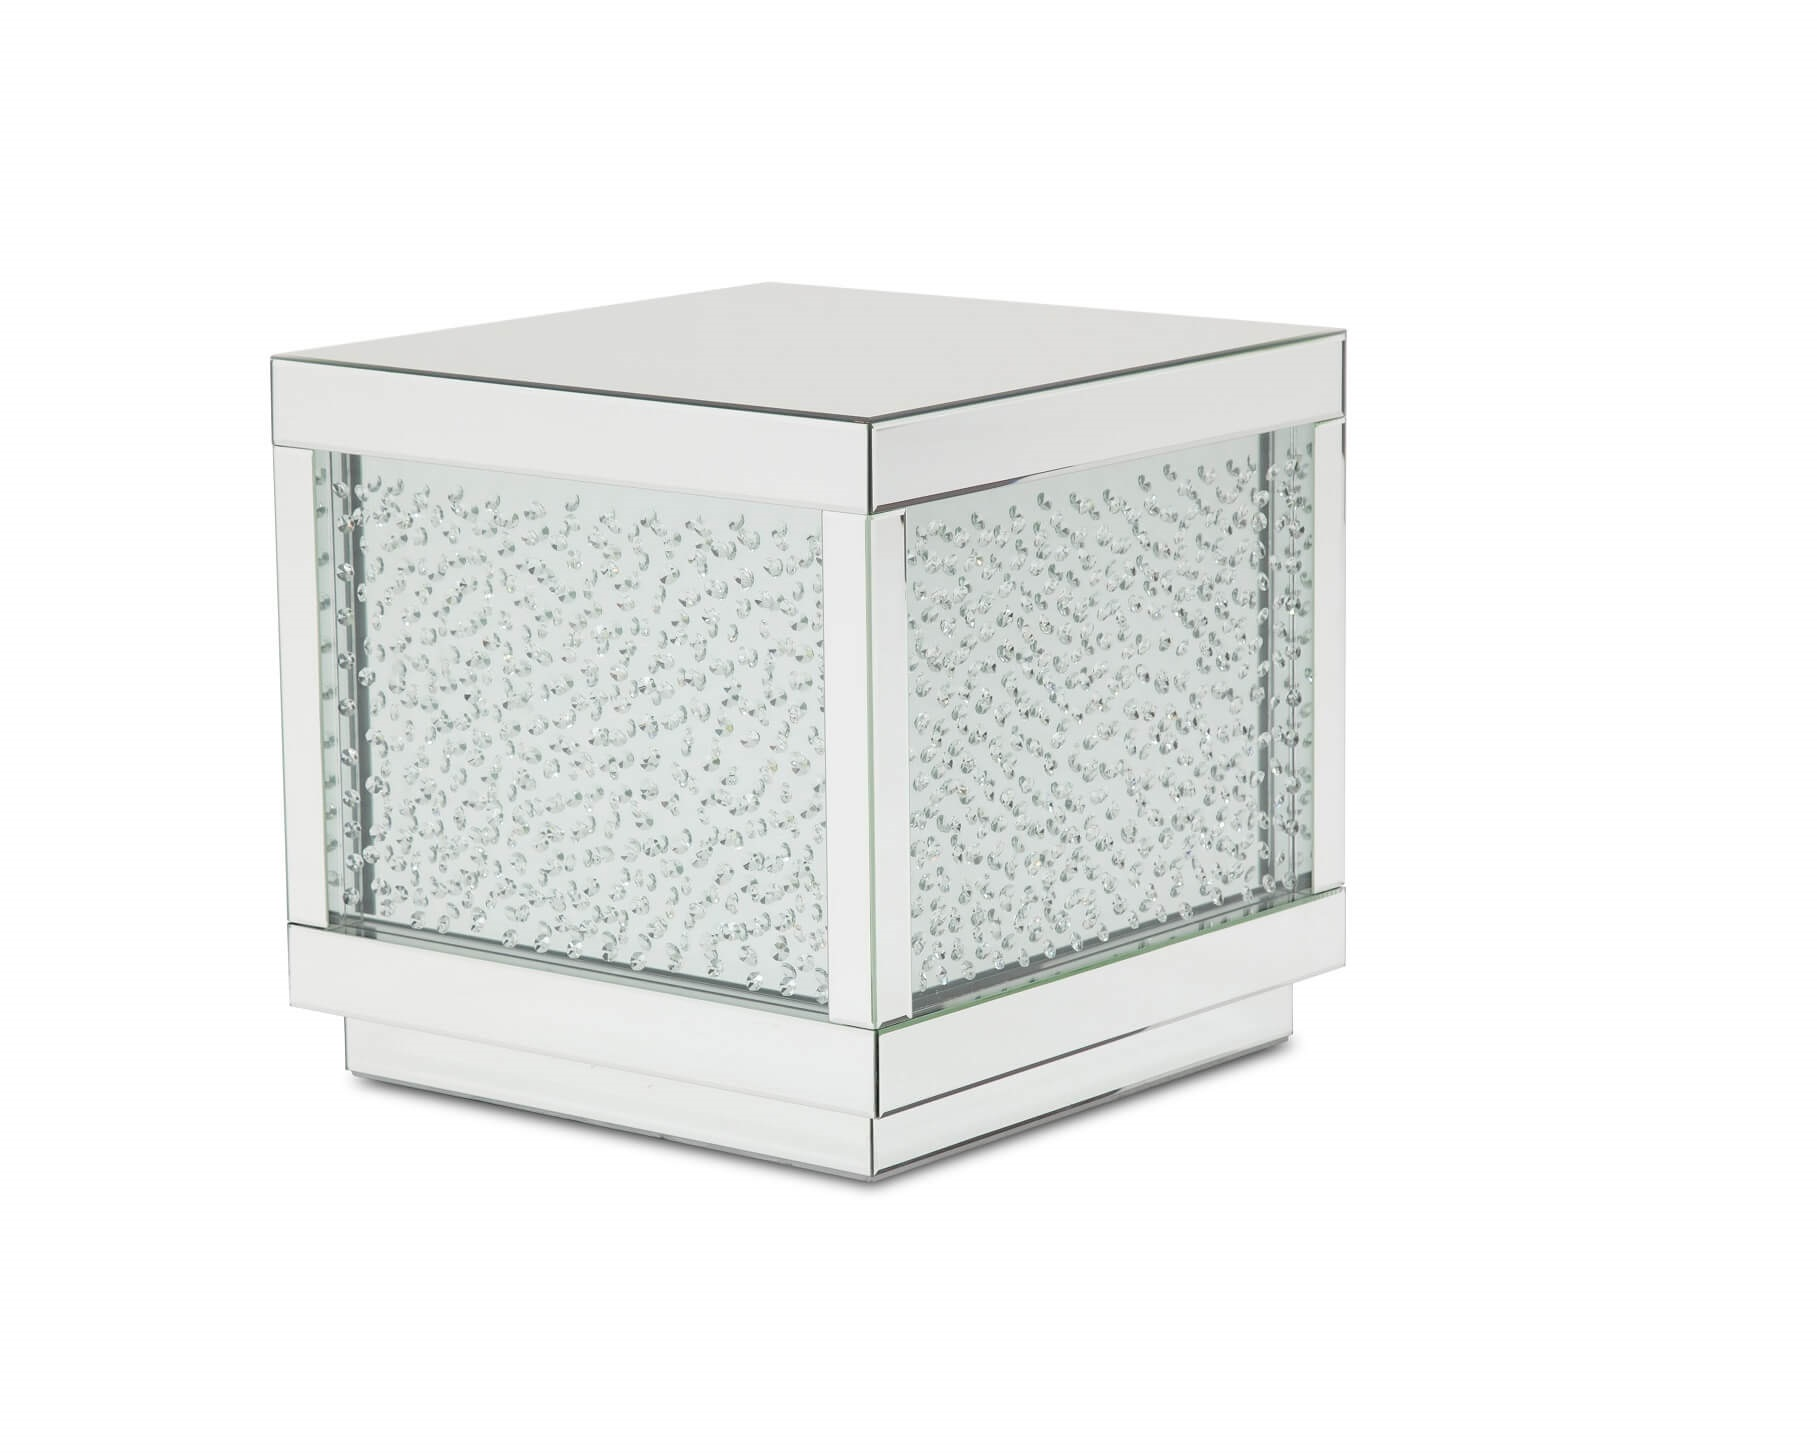 Montreal Silver Mirrored Crystals End Table Fs Mntrl202h Usa Furniture Online